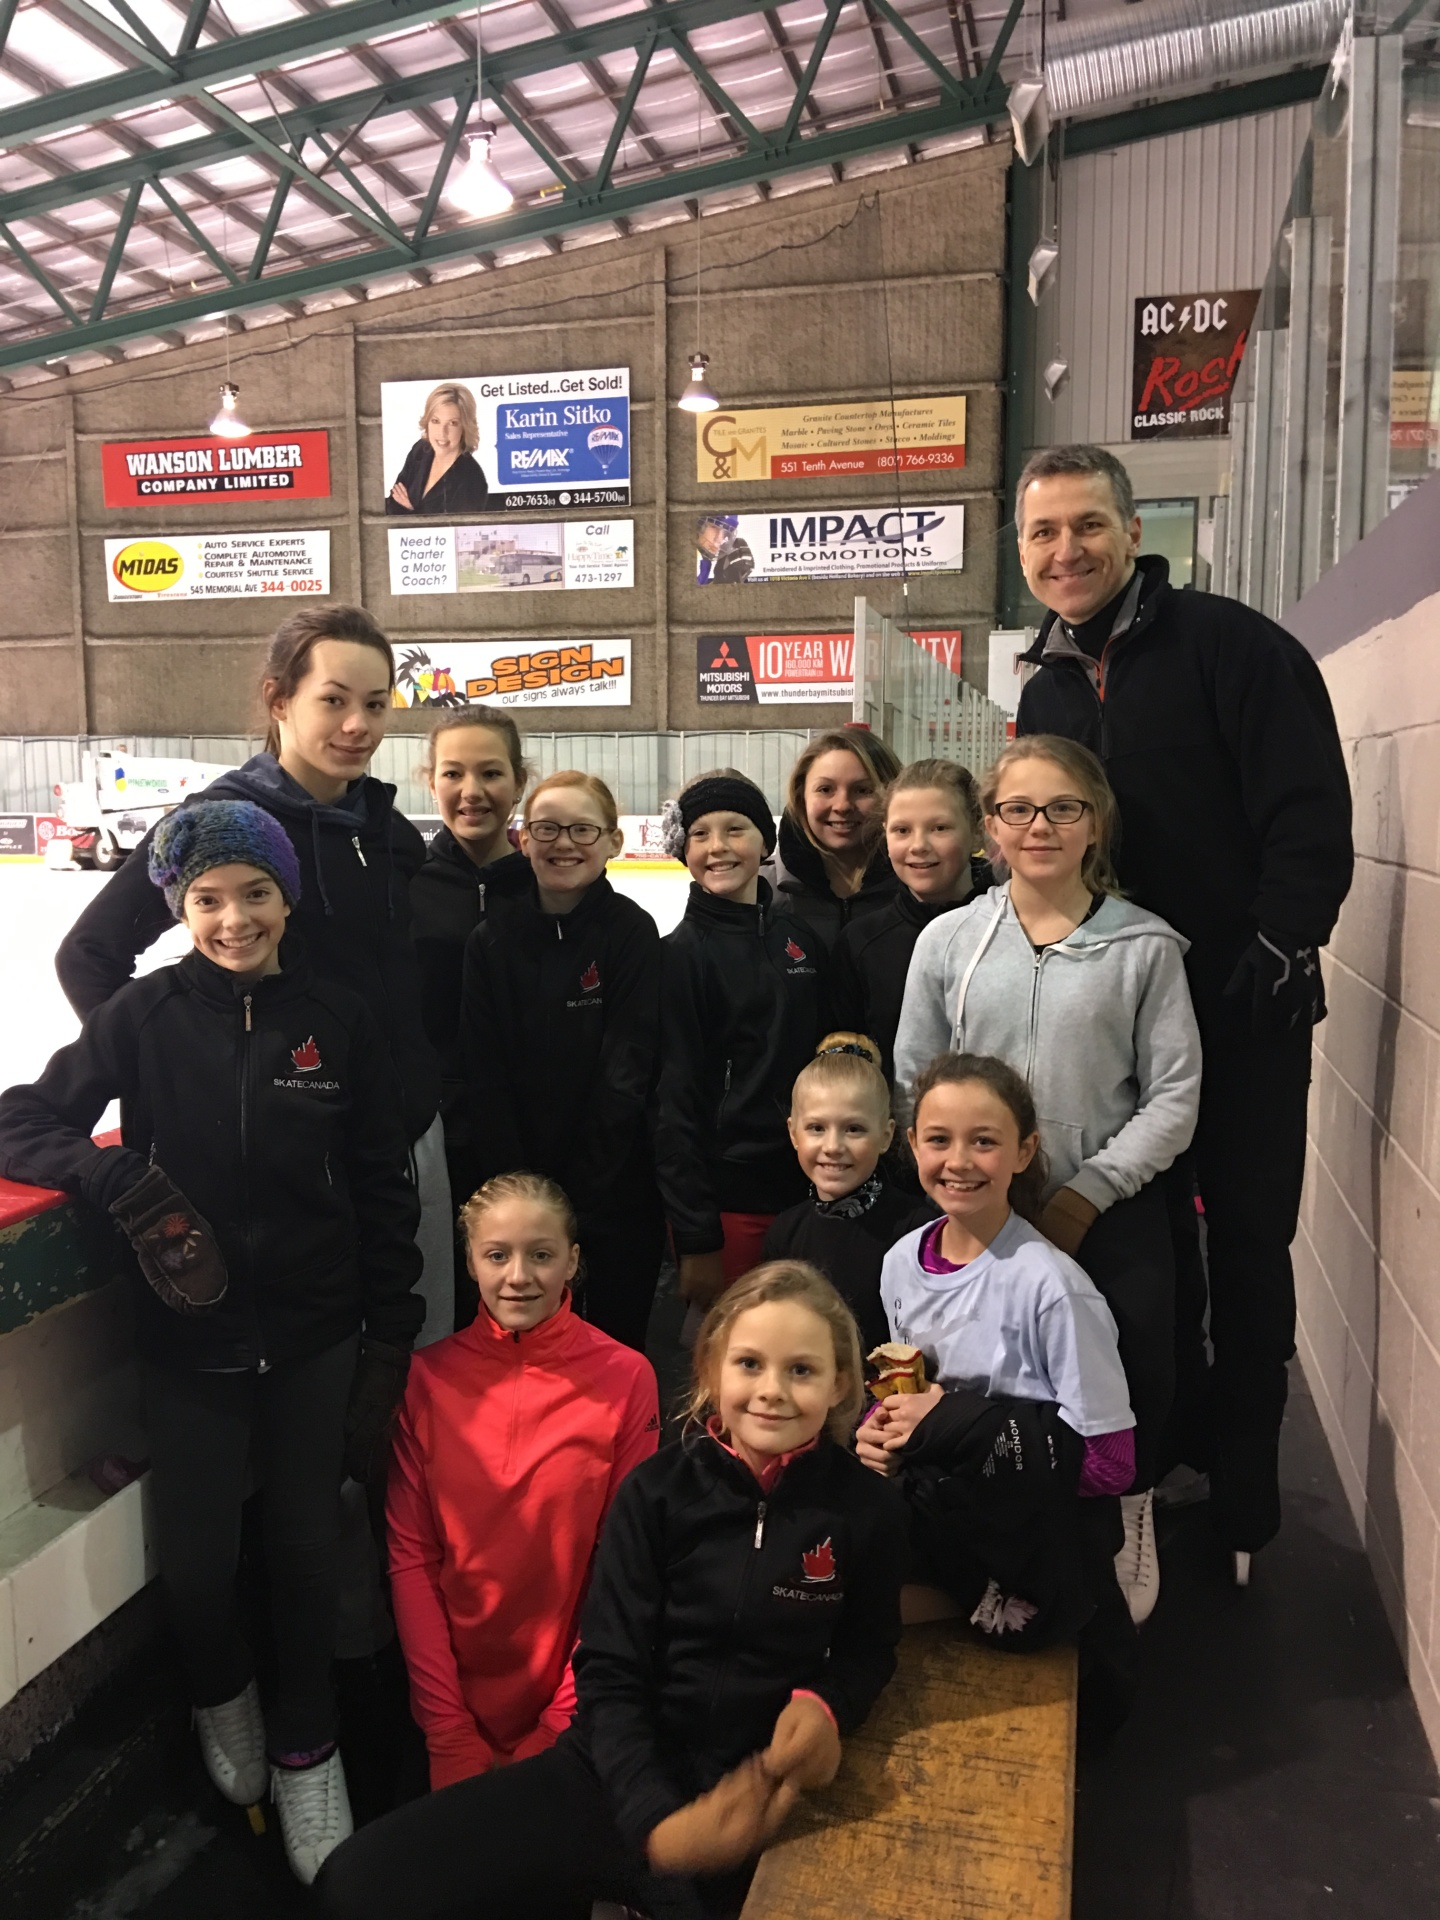 Seminar with Elvis Stojko